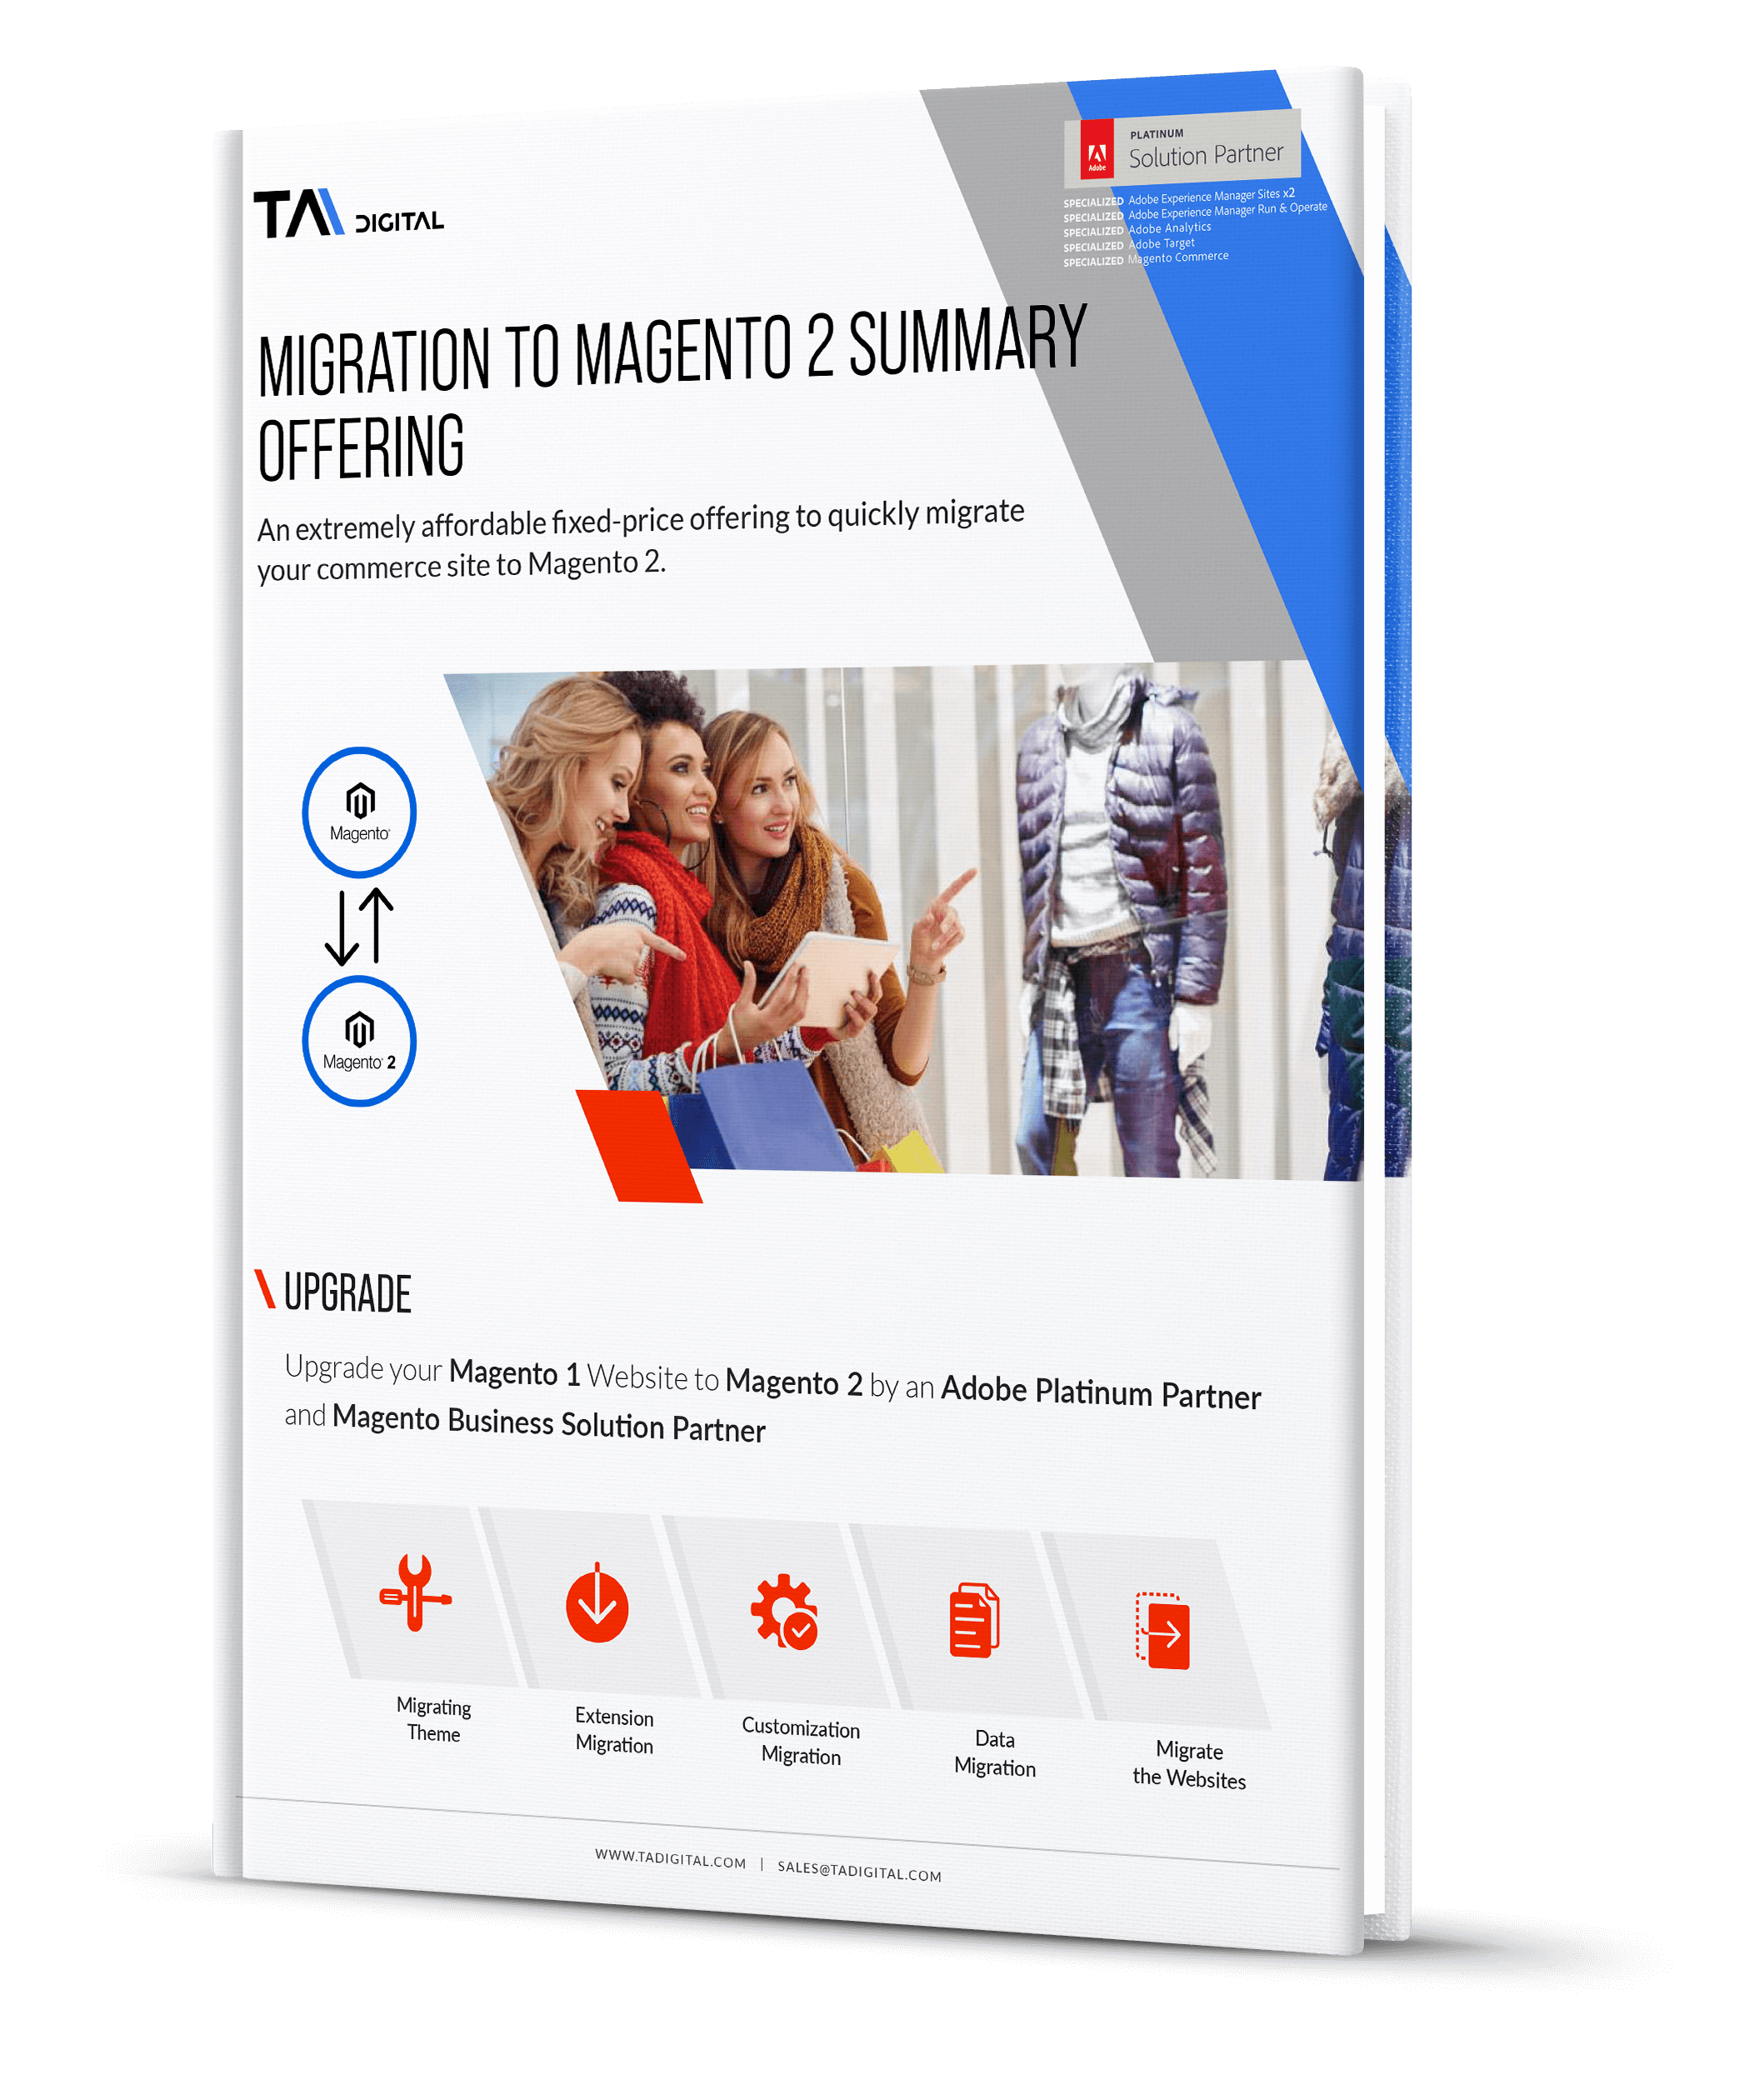 Migration to Magento 2 Offering new Ebook